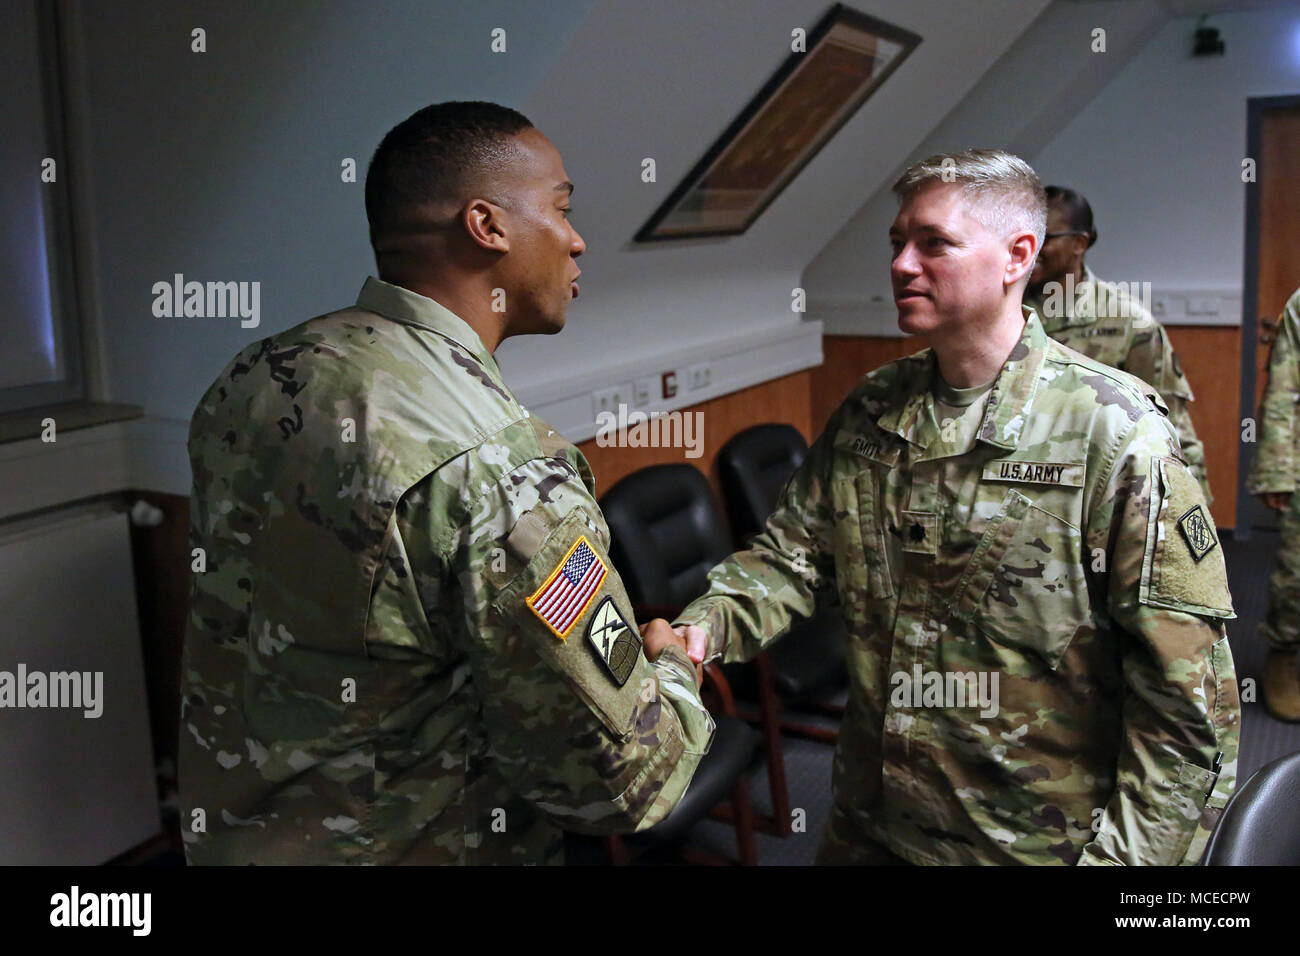 congratulates 1st sgt corrie moore headquarters and headquarters company 2nd theater signal bde on his lateral promotion to first